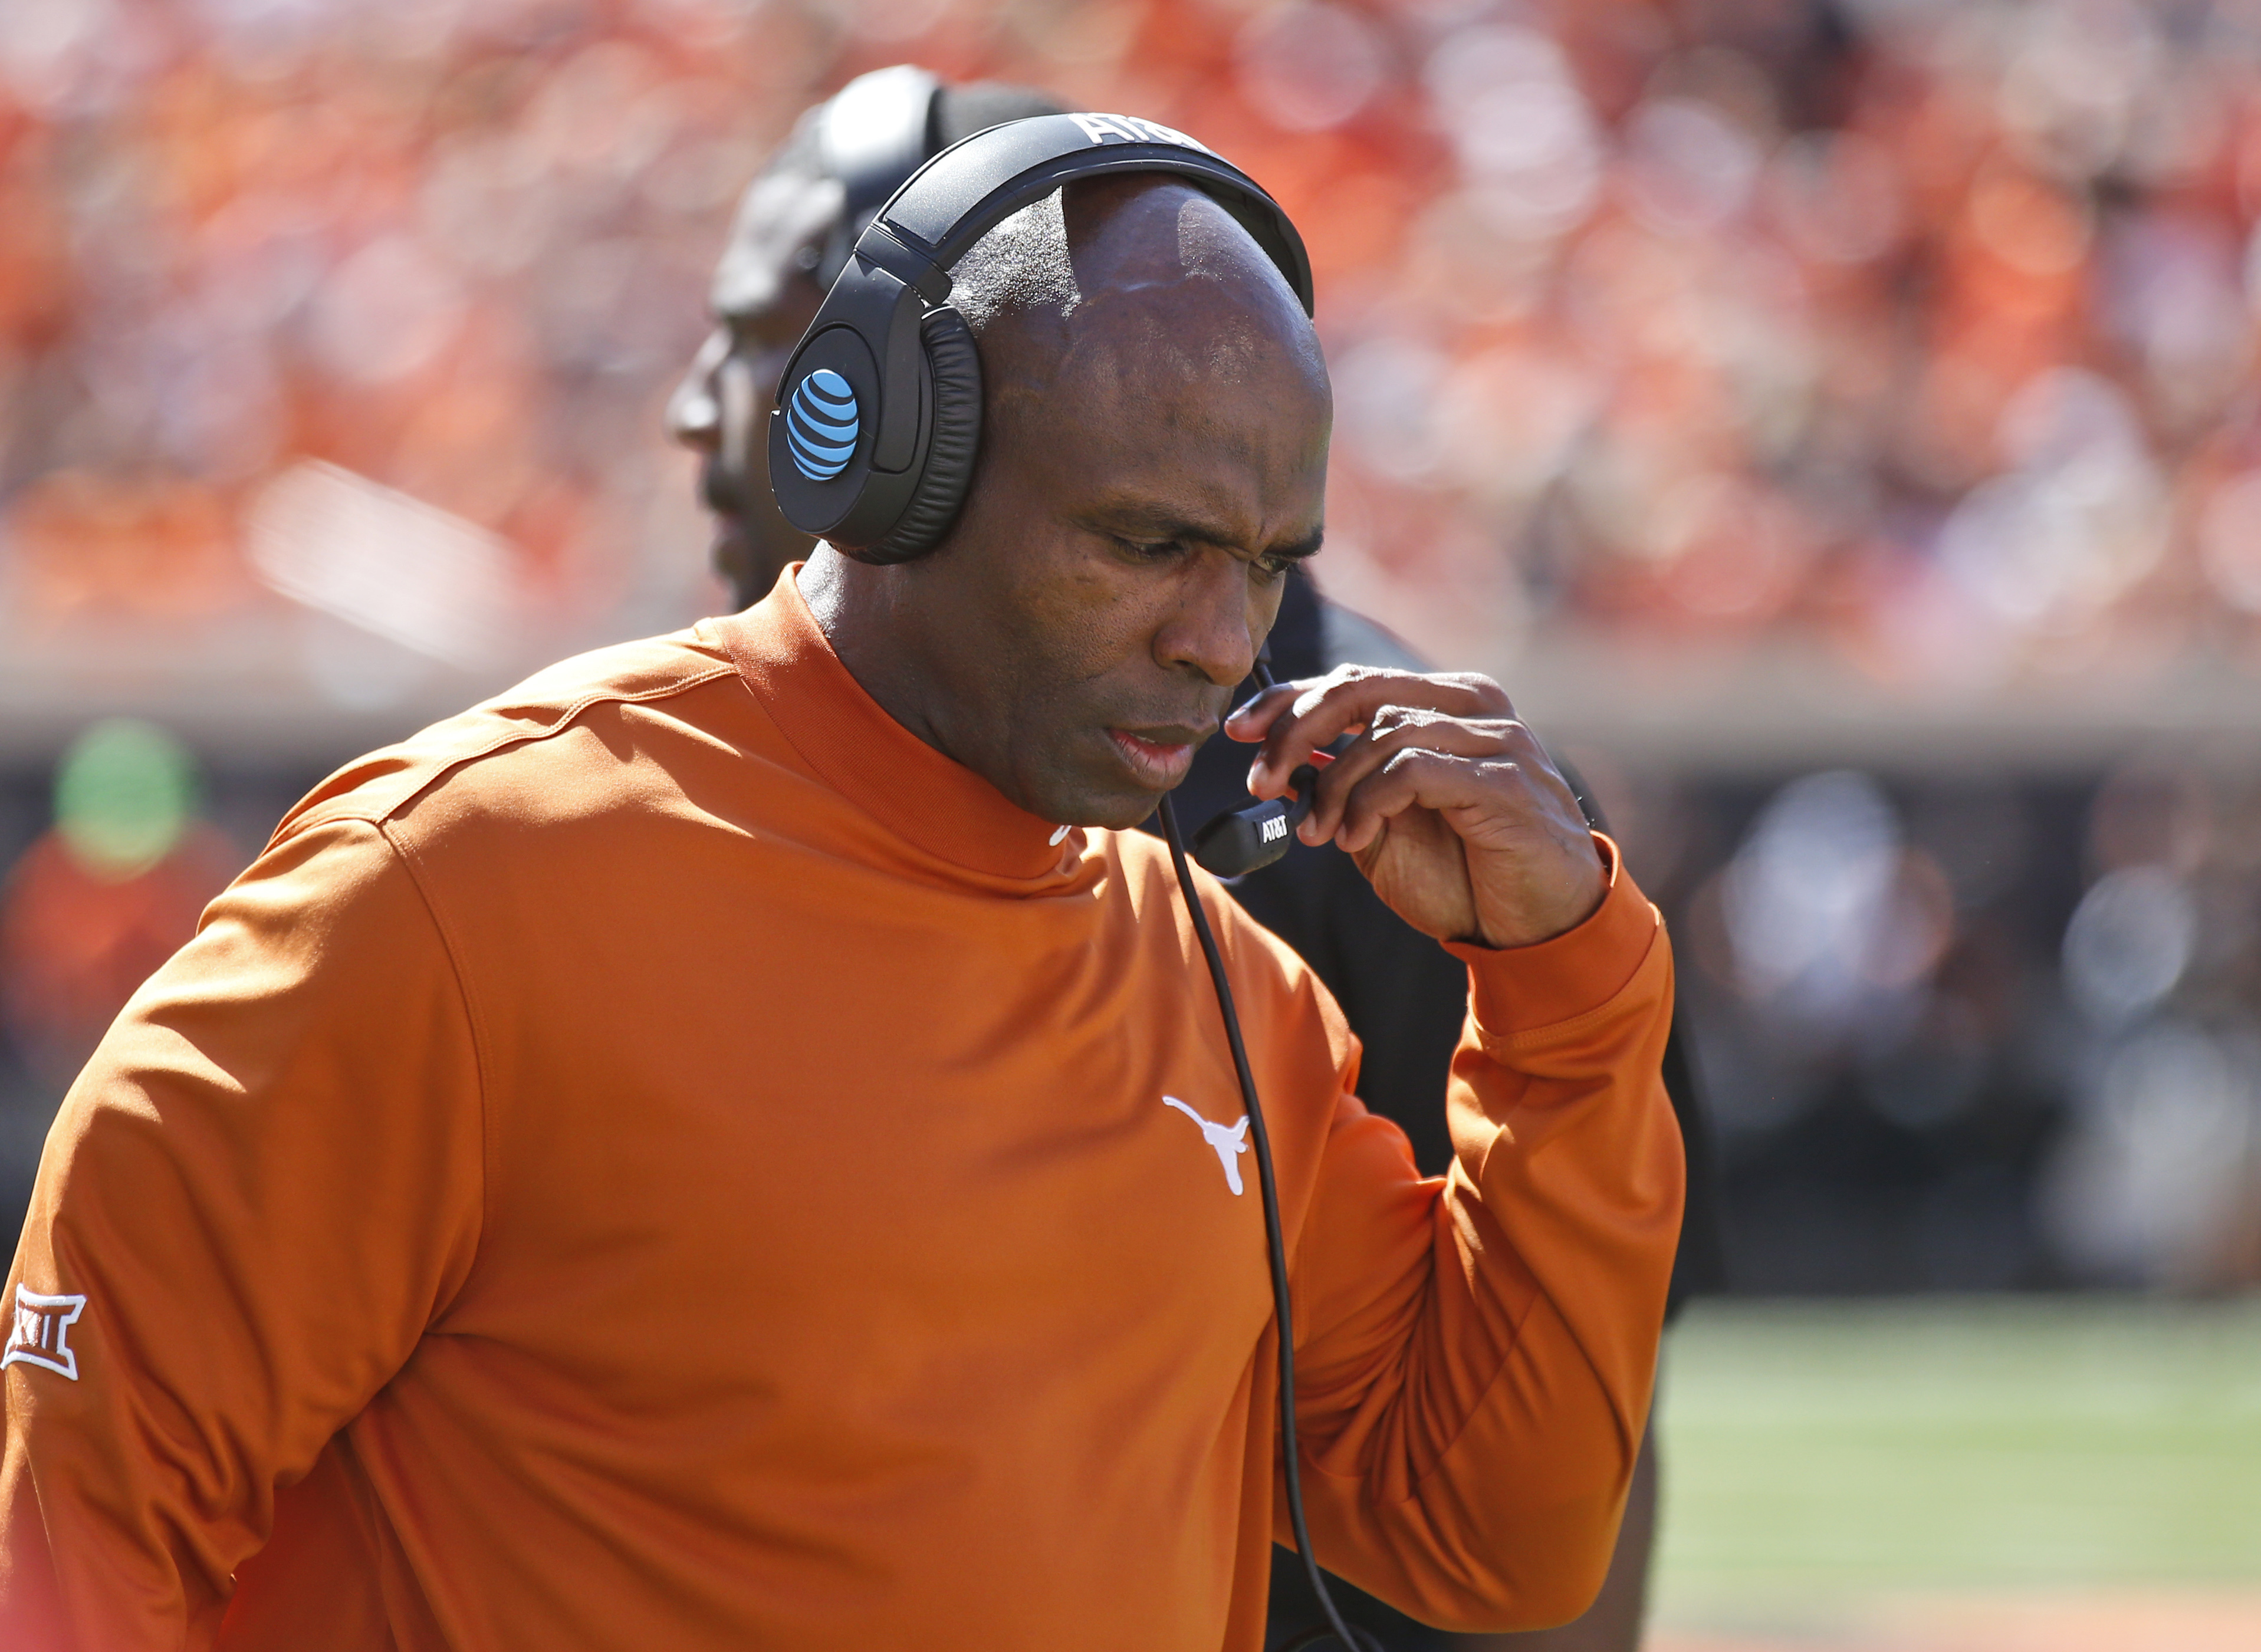 Texas head coach Charlie Strong walks along the sideline during an NCAA college football game against Oklahoma State in Stillwater, Okla., Saturday, Oct. 1, 2016. Oklahoma State won 49-31. (AP Photo/Sue Ogrocki)